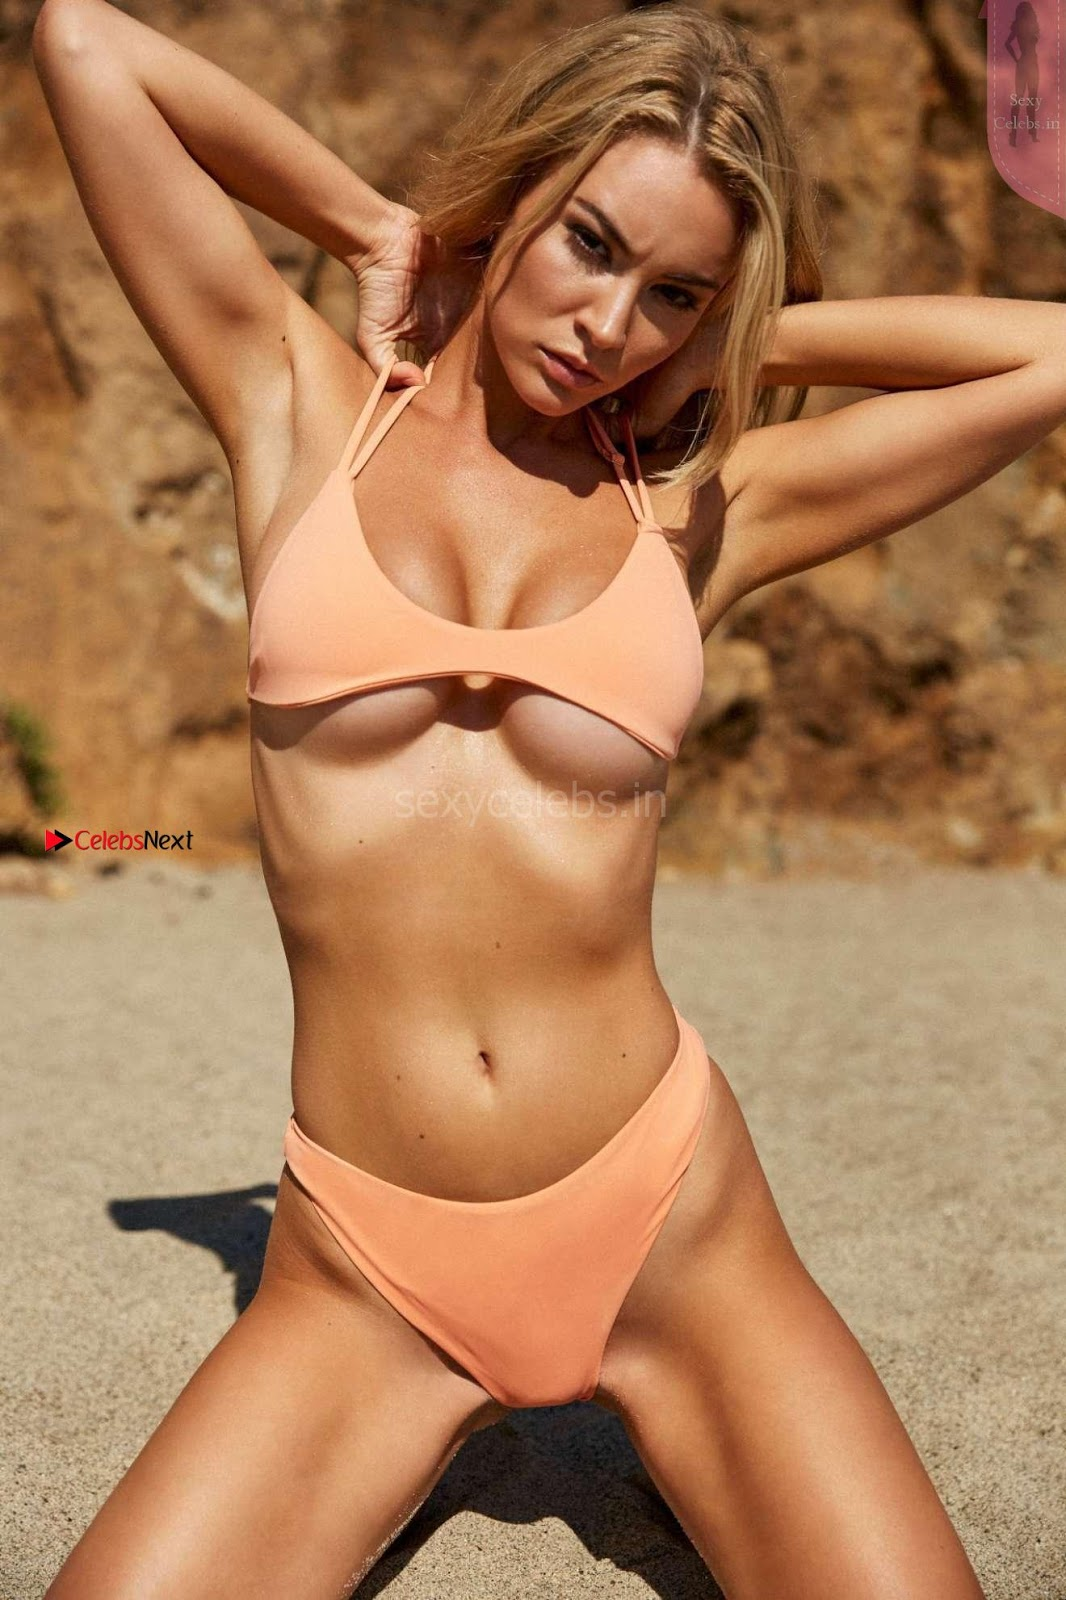 Bryana-Holly-Bikini-Pictureshoot-01+%7E+SexyCelebs.in+Exclusive.jpg